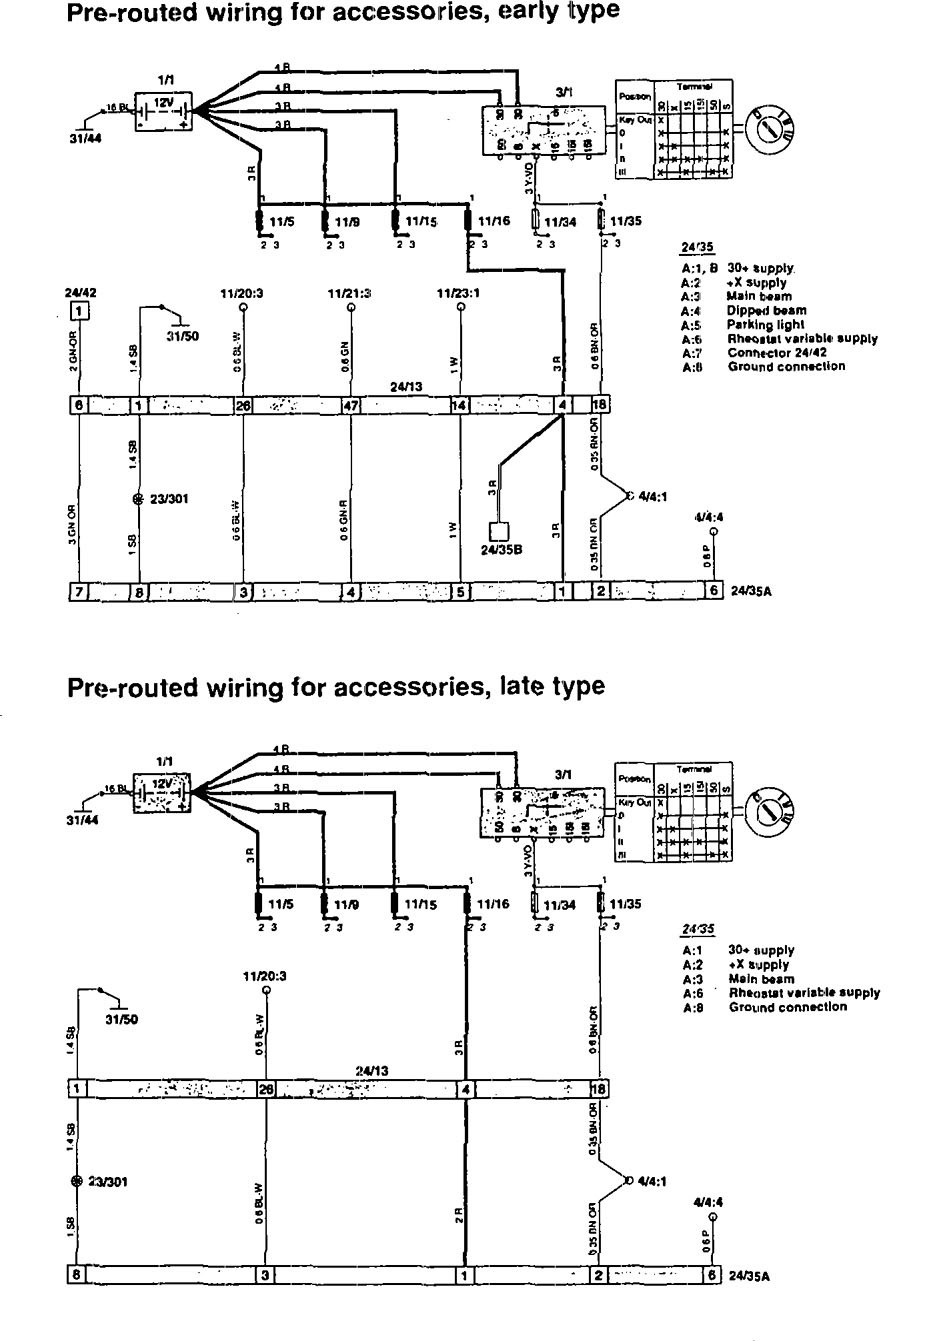 06 Volvo Xc90 Fuse Diagram Wiring Schematic Diagrams Dodge Intrepid 142 Parts